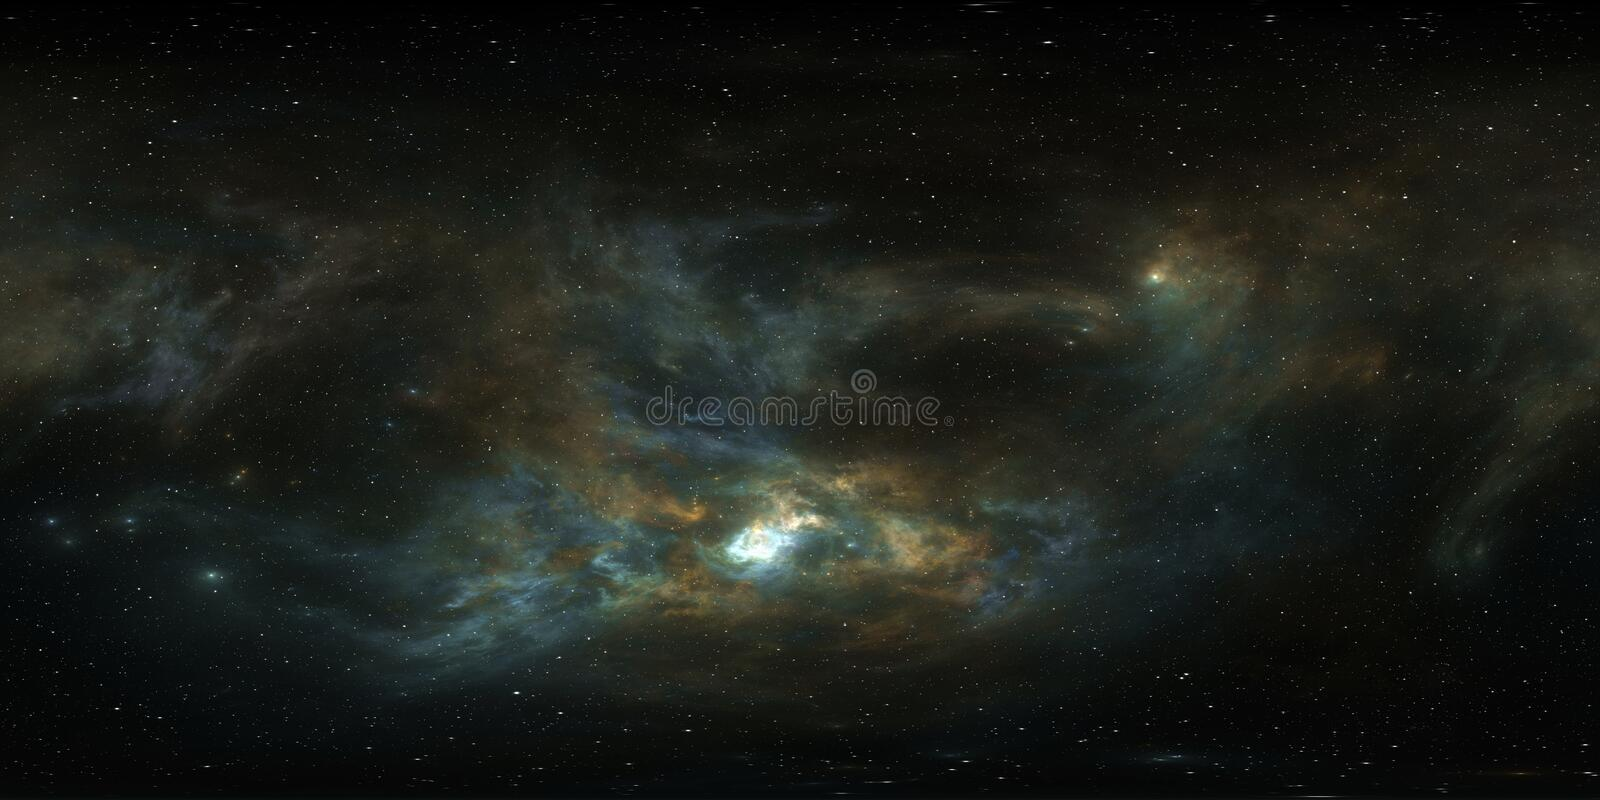 360 degree giant nebula after a supernova explosion, equirectangular projection, environment map. HDRI spherical panorama stock photography